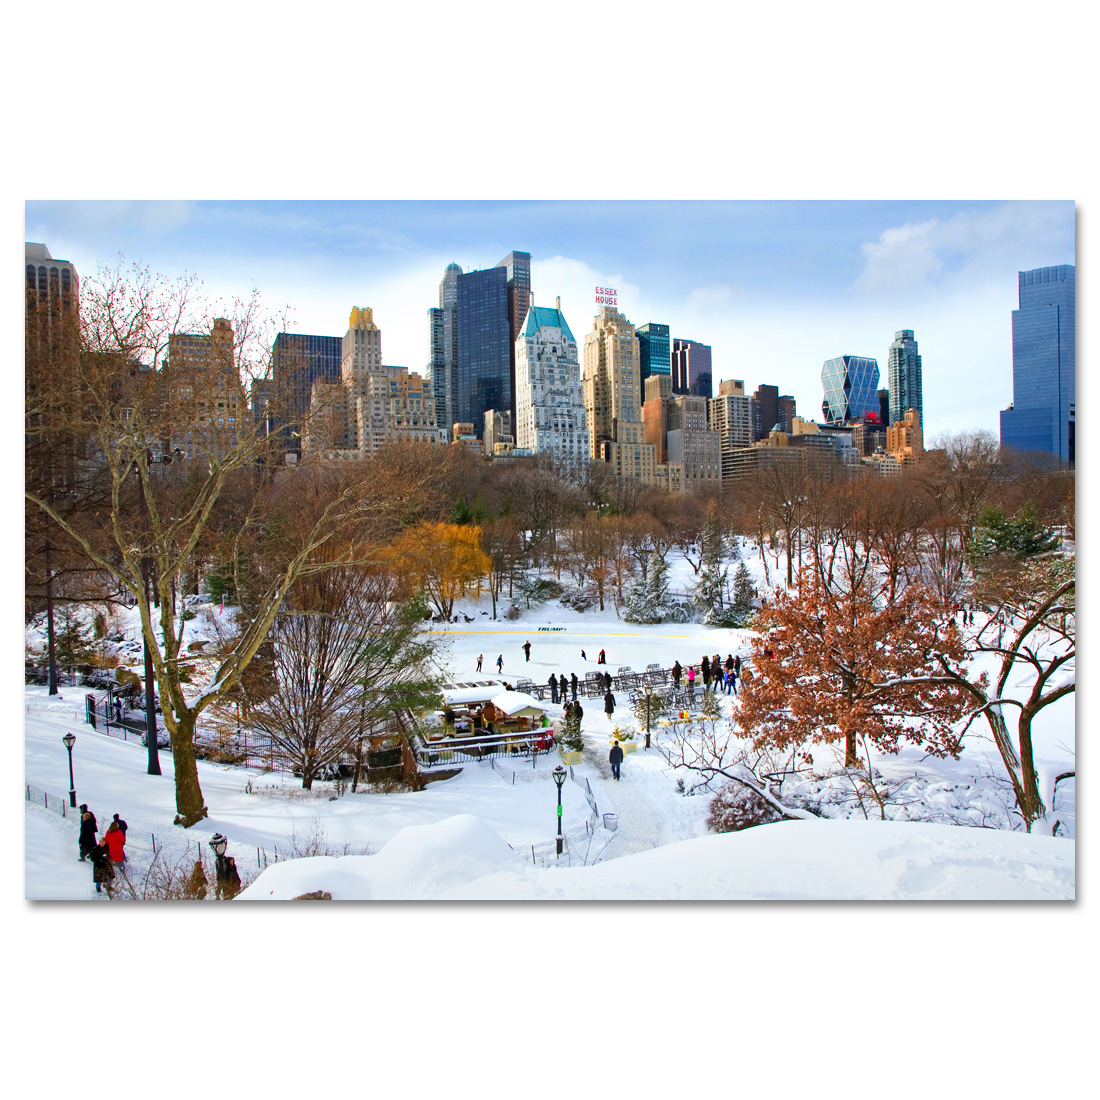 Wollman Rink in Central Park New York Art Print MP-1142